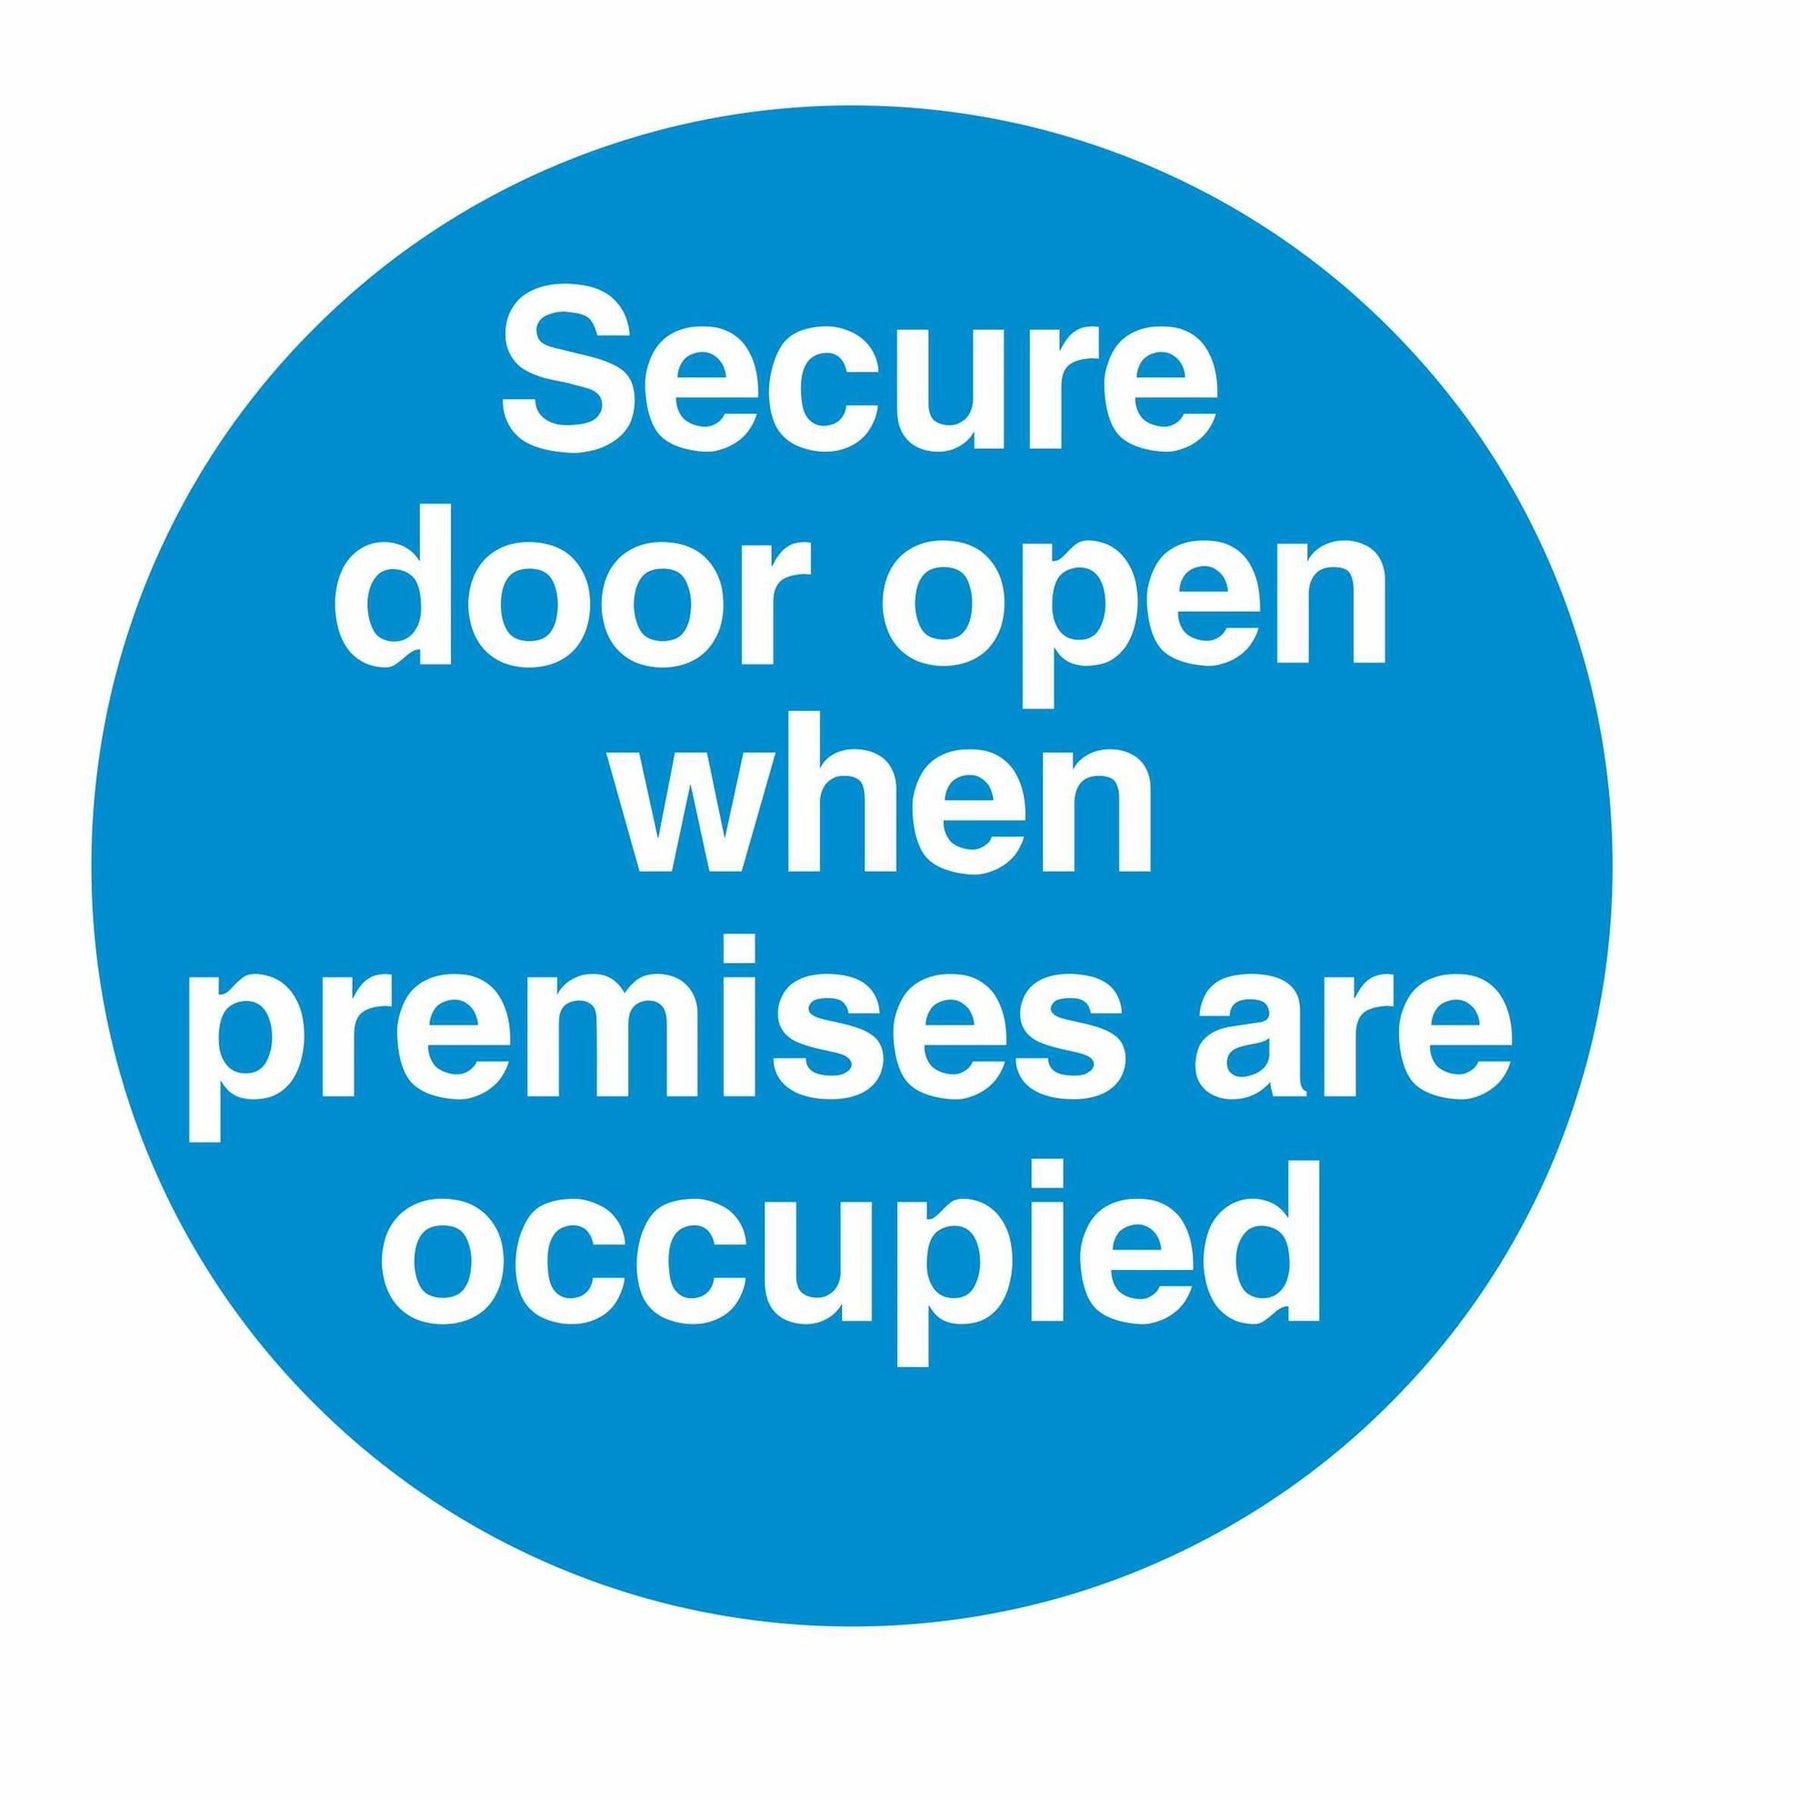 SECURE DOOR OPEN WHEN PREMISES ARE OCCUPIED - SELF ADHESIVE STICKER